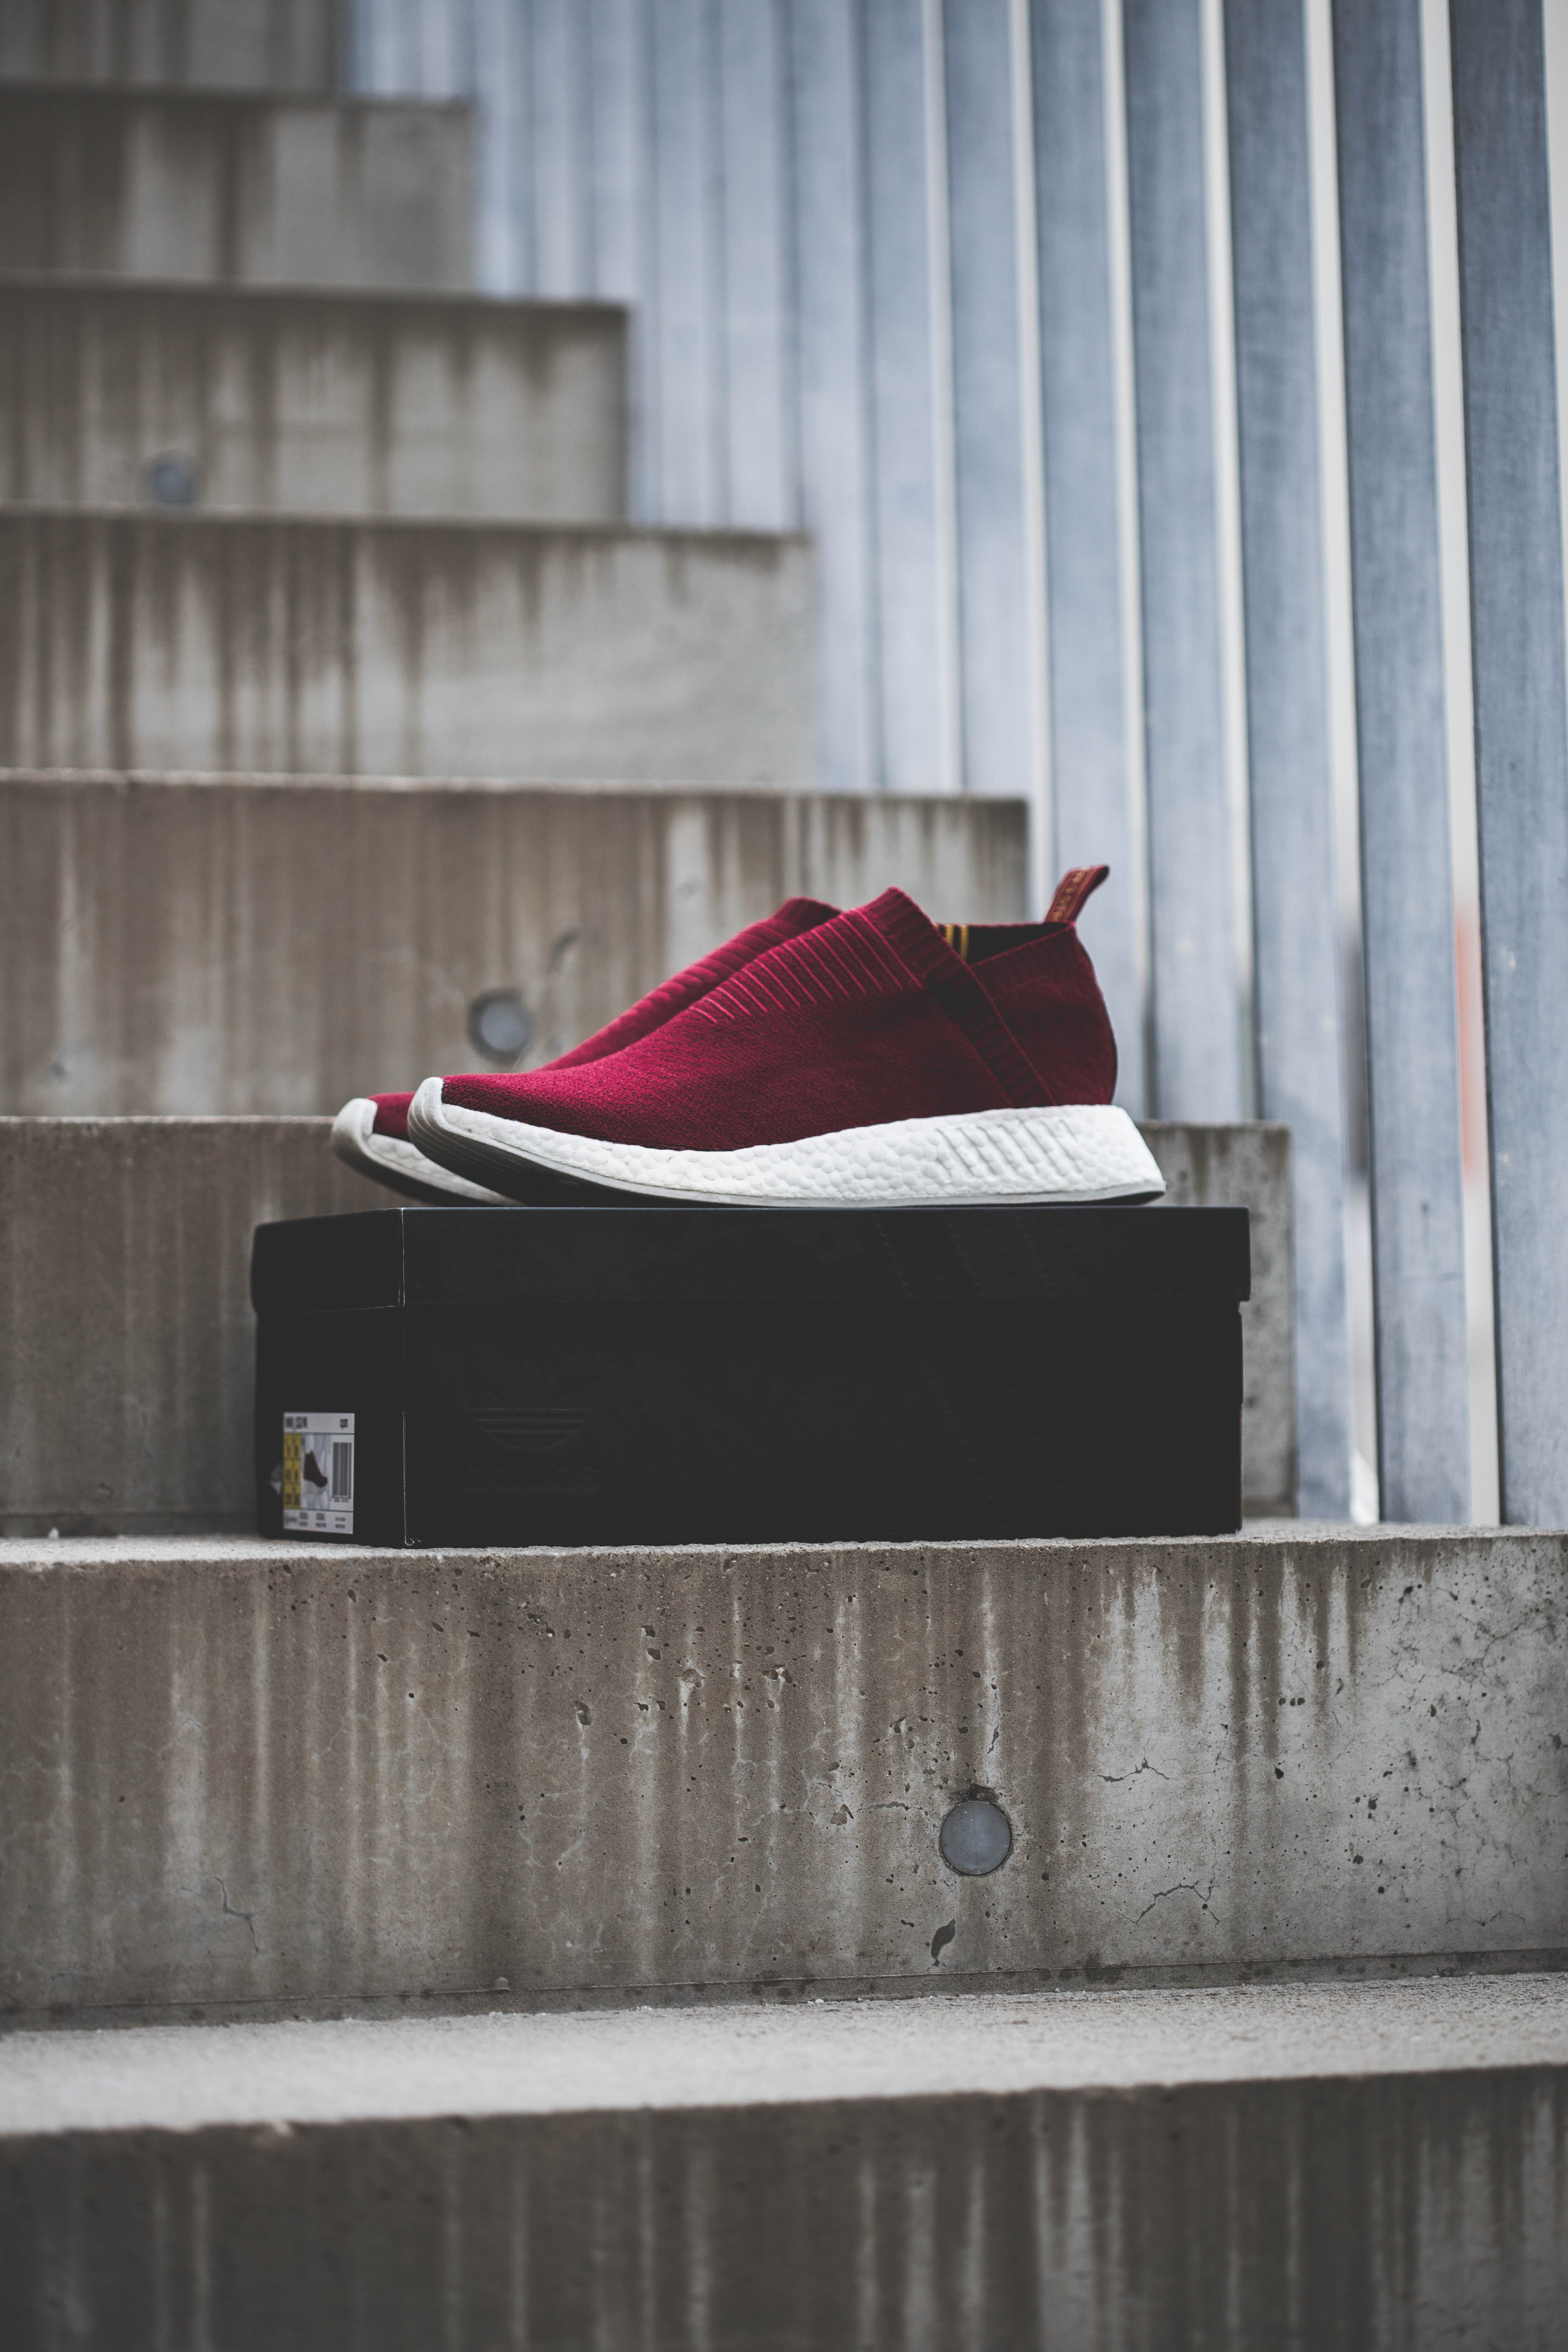 pair of red low-top running shoes with box